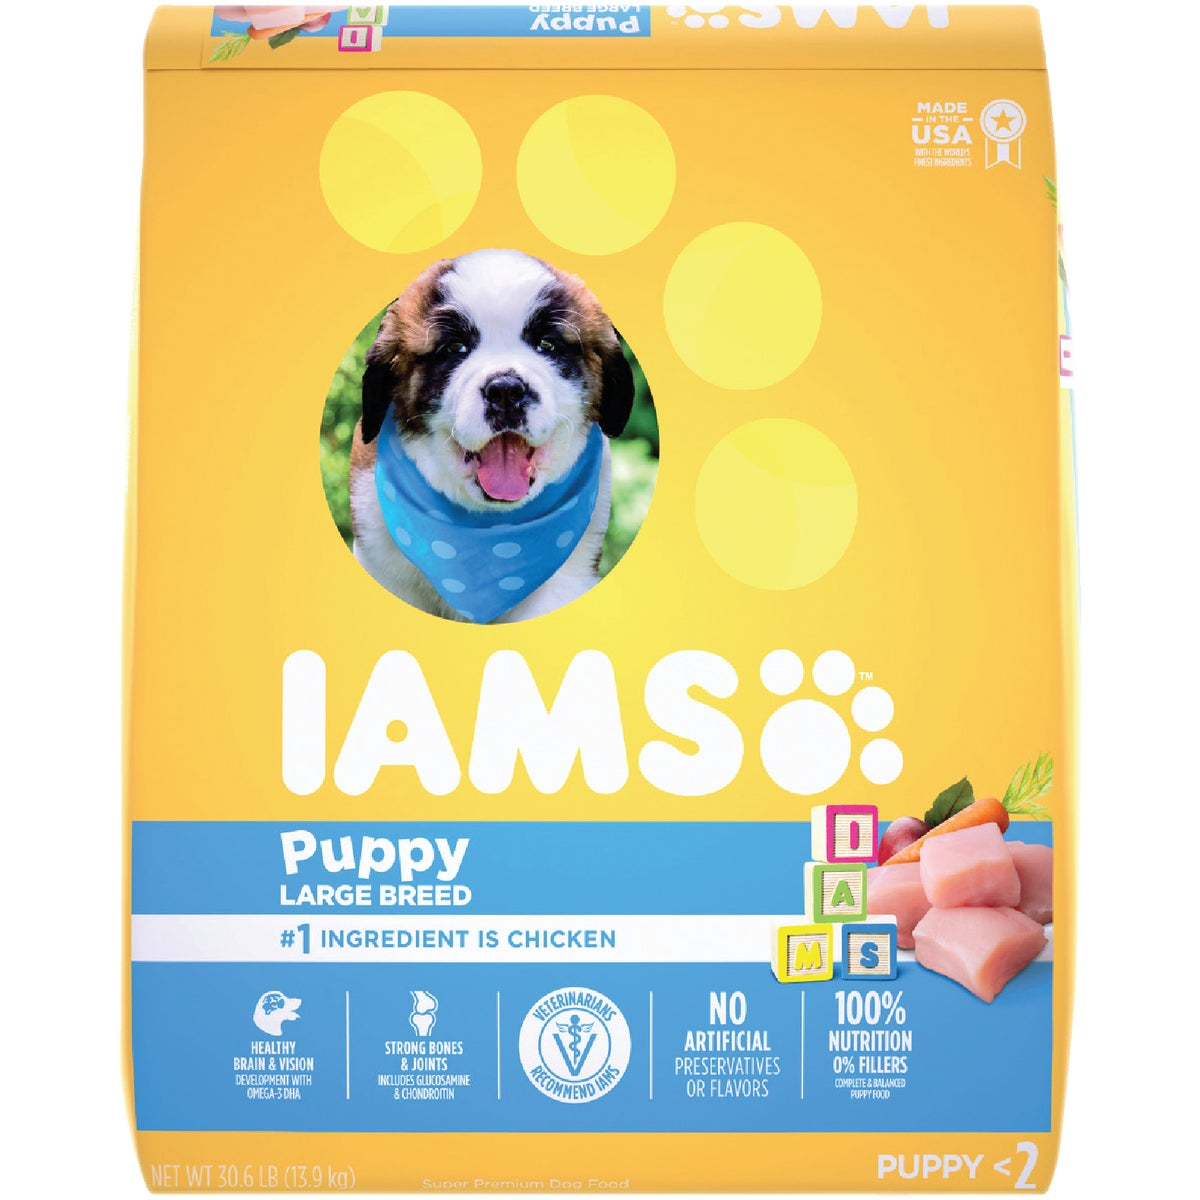 30.6LB LG BRD PUPPY FOOD - 00738 by Wolverton Iams